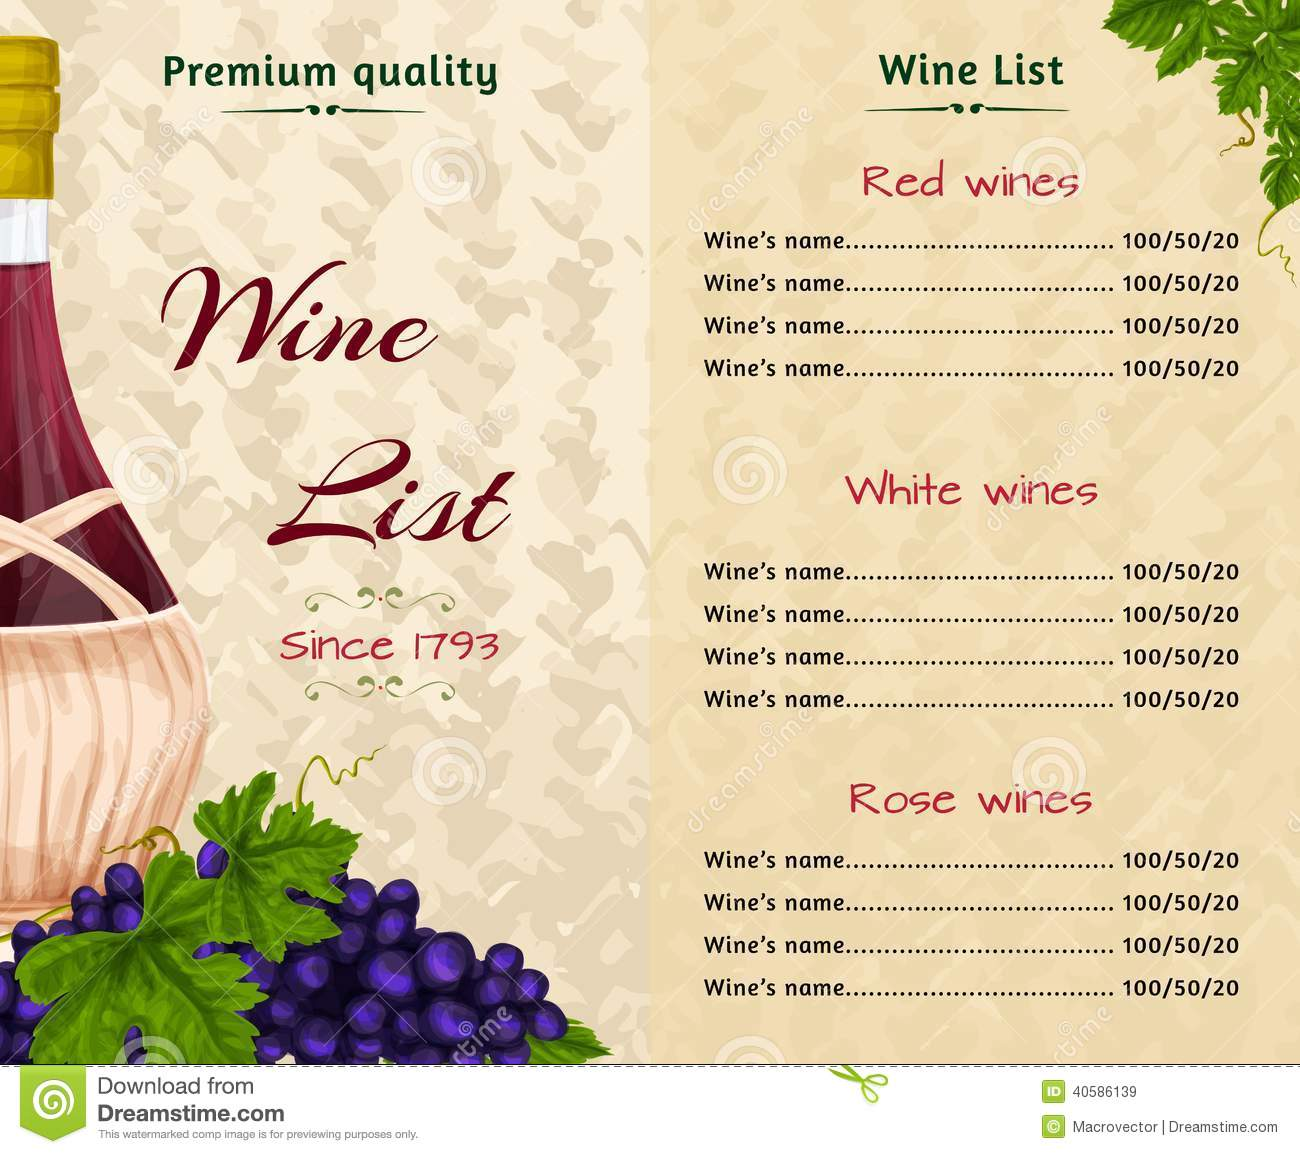 Wine List Template Illustration 40586139 - Megapixl